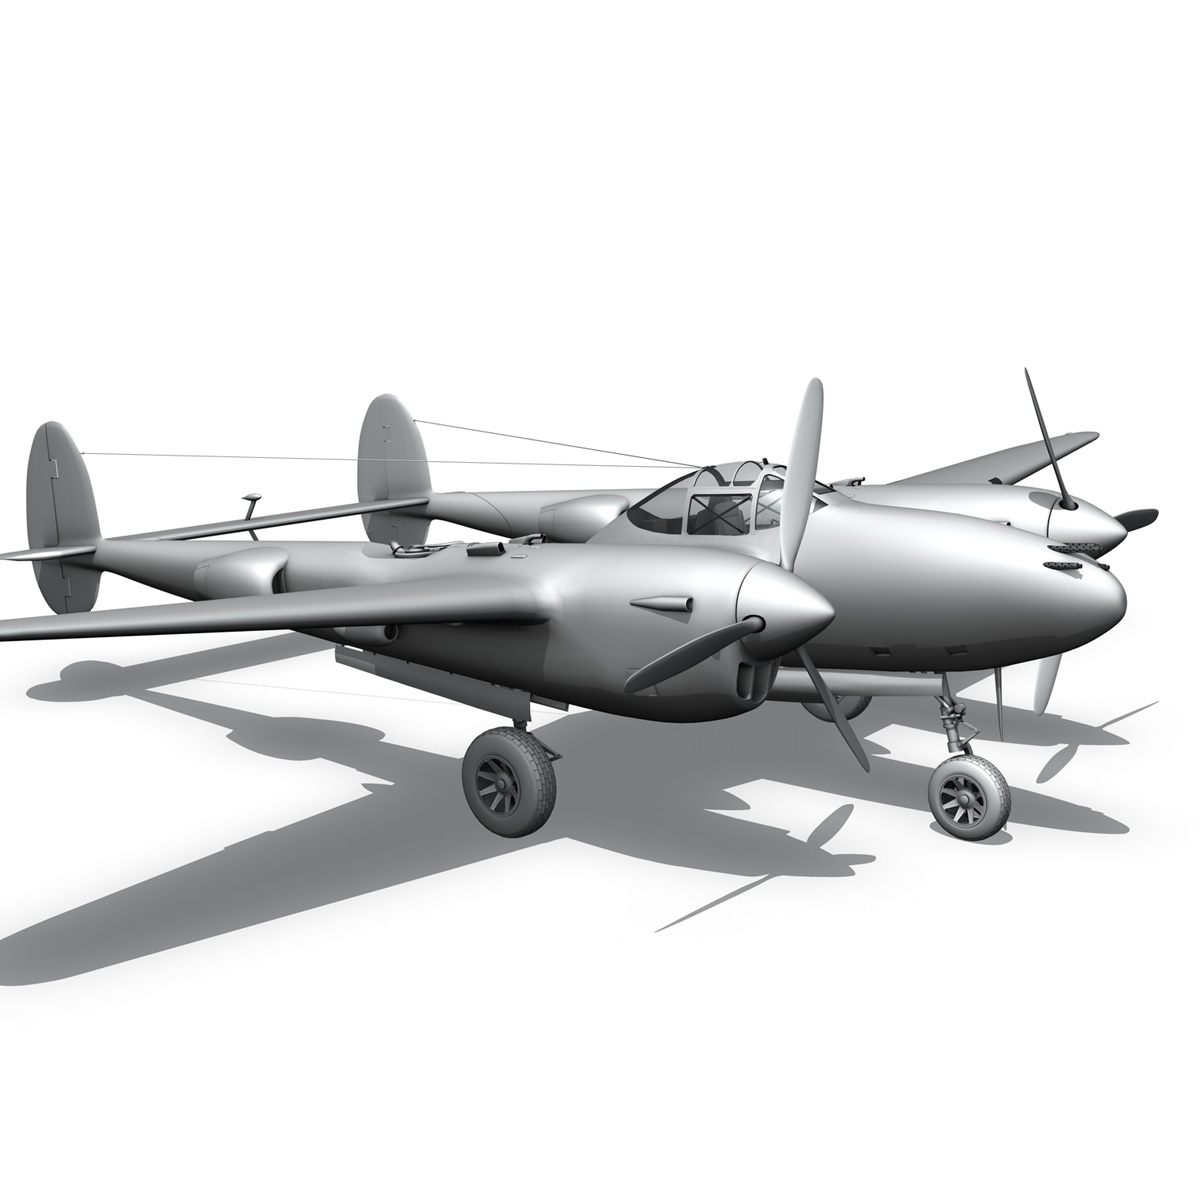 lockheed p-38 lightning – florida cracker 3d model fbx c4d lwo obj 279432